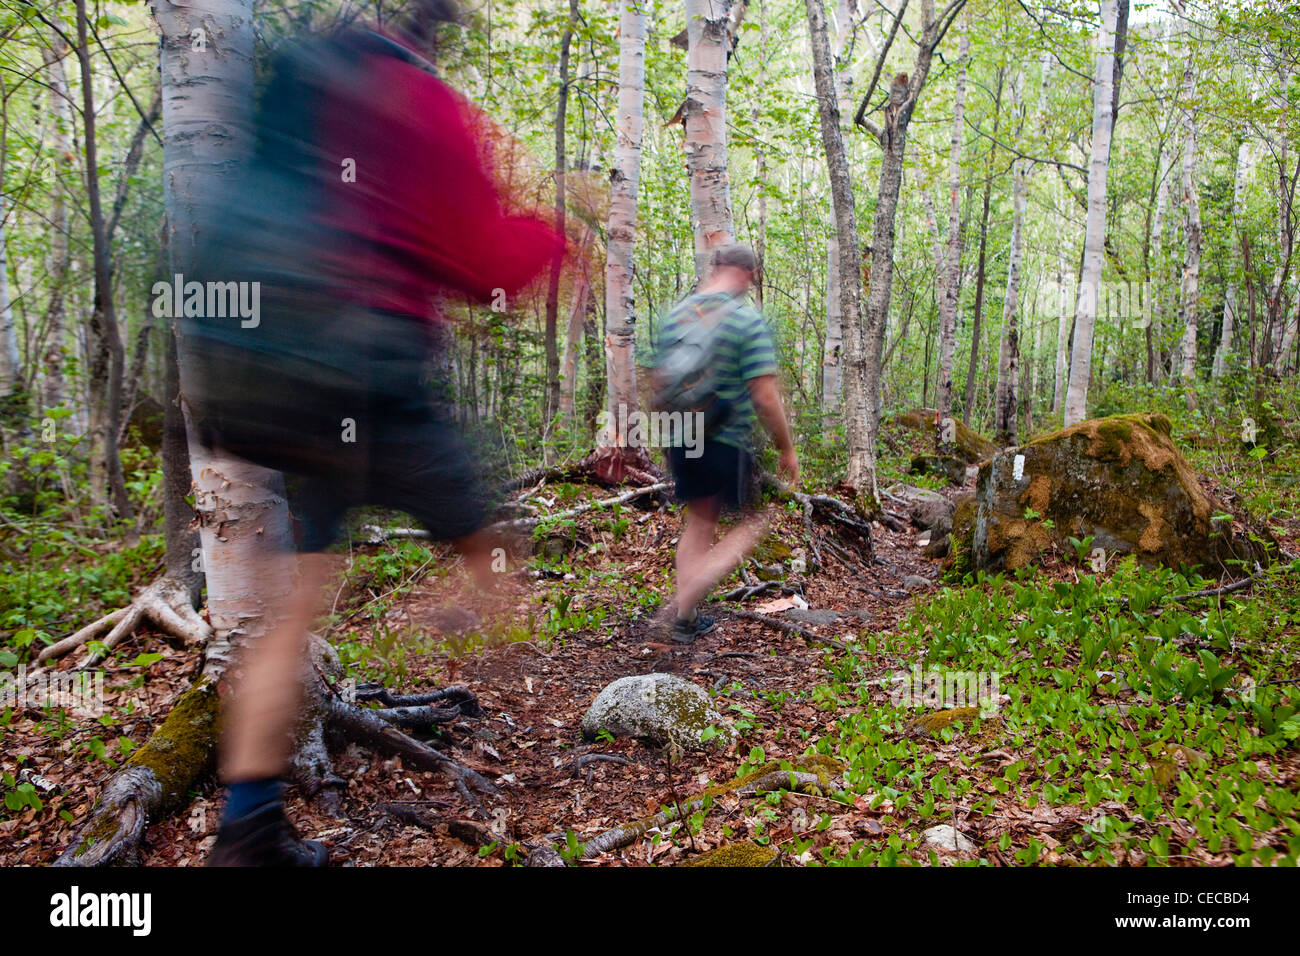 Two men hike through a paper birch forest on the Appalachian Trail on Crocker Mountain in Stratton, Maine. - Stock Image